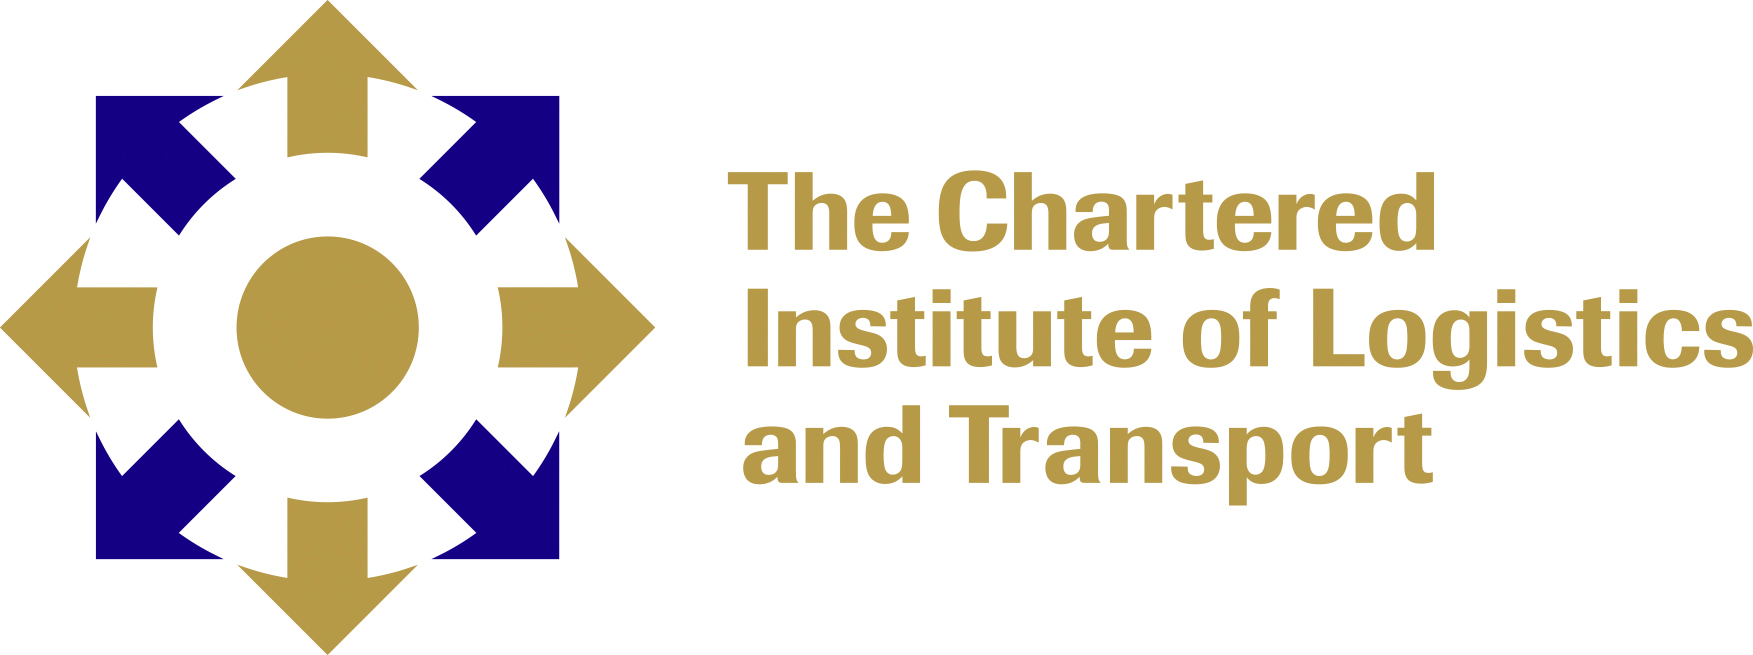 The Chartered Institute of Logistics and Transport in Hong Kong